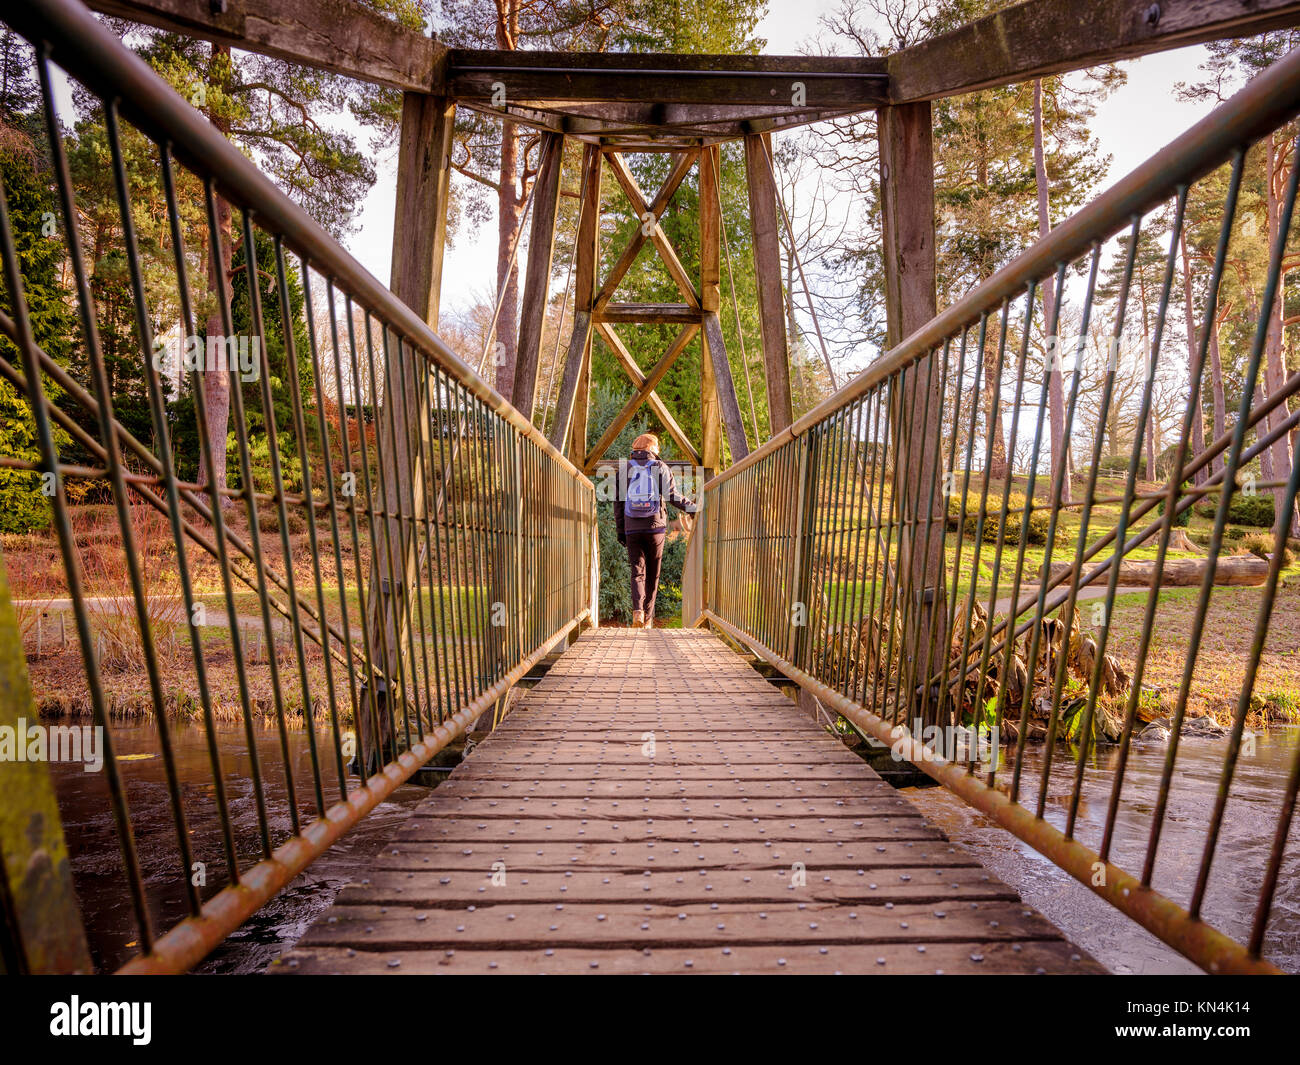 The bridge over Marshall's Lake at Bedgebury National Pinetum and Forest in on the Sussex, Kent border. - Stock Image